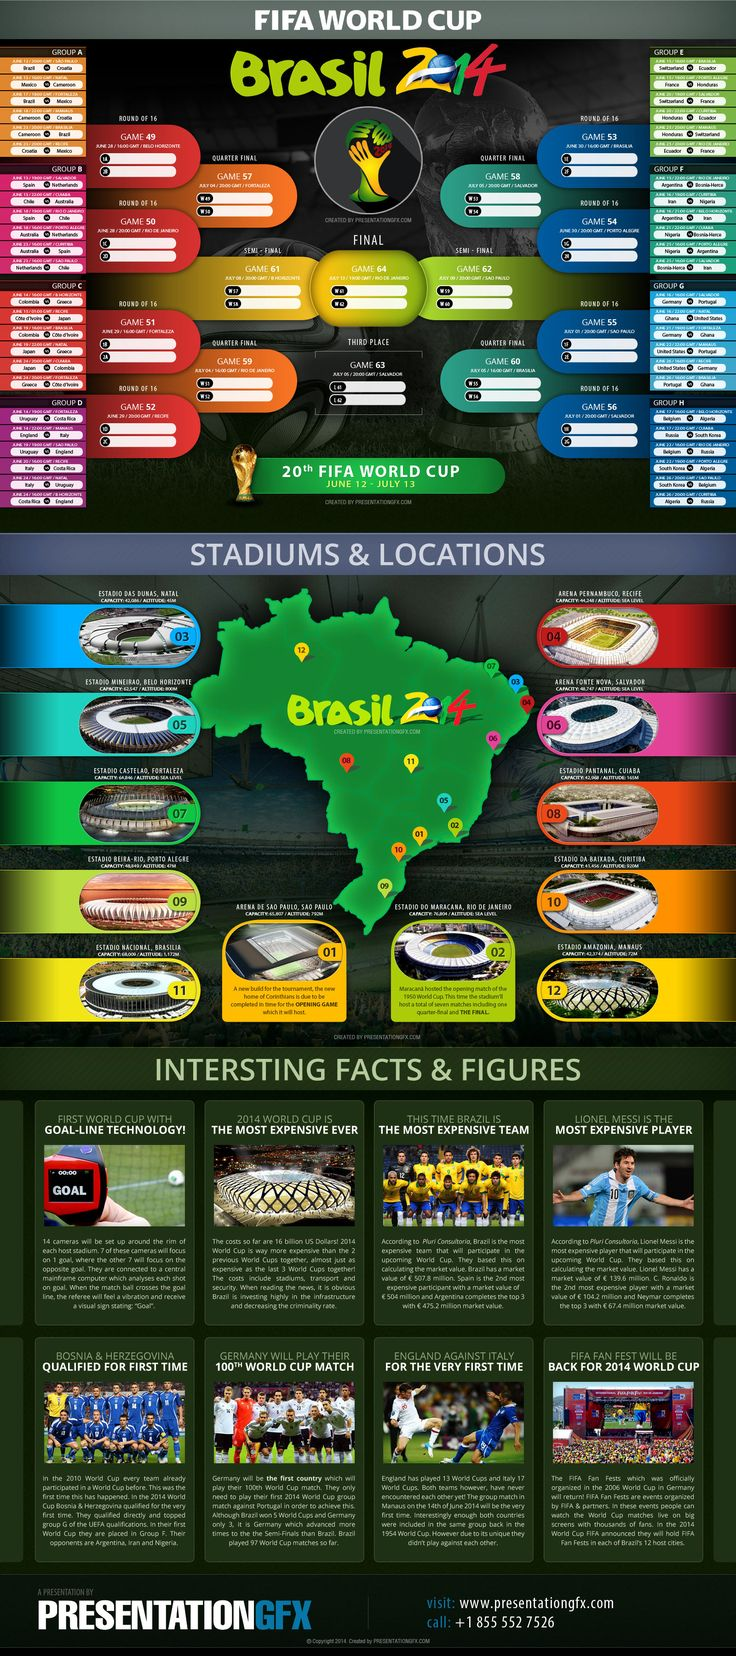 FIFA WORLD CUP Poster and Stadia - COLORFUL!